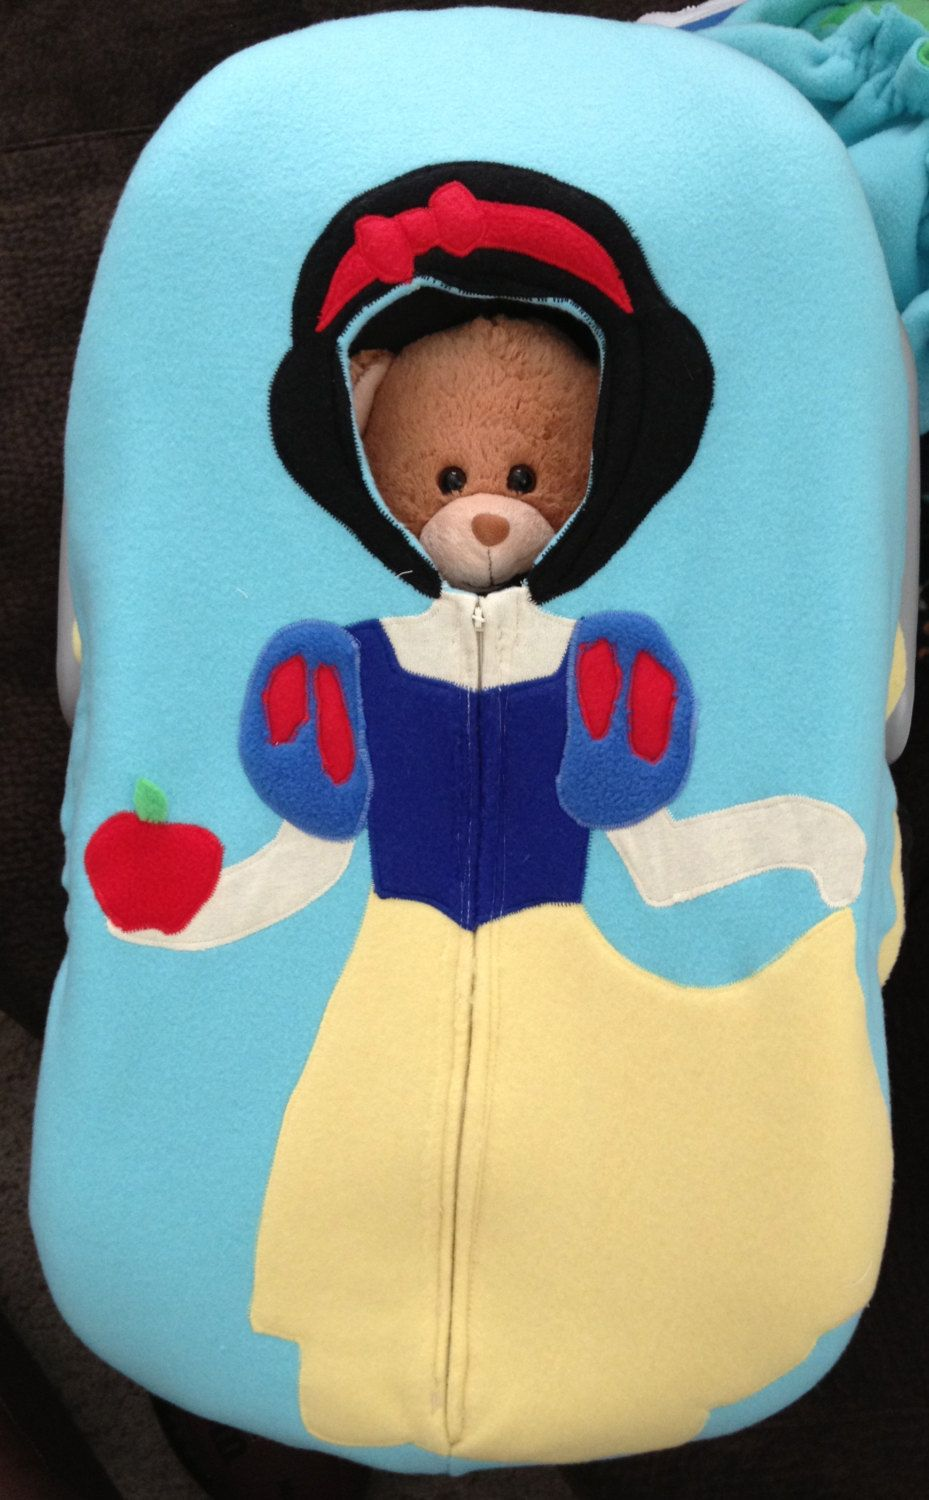 Snow White Car Seat Snuggler Fitted Cover 6300 Via Etsy